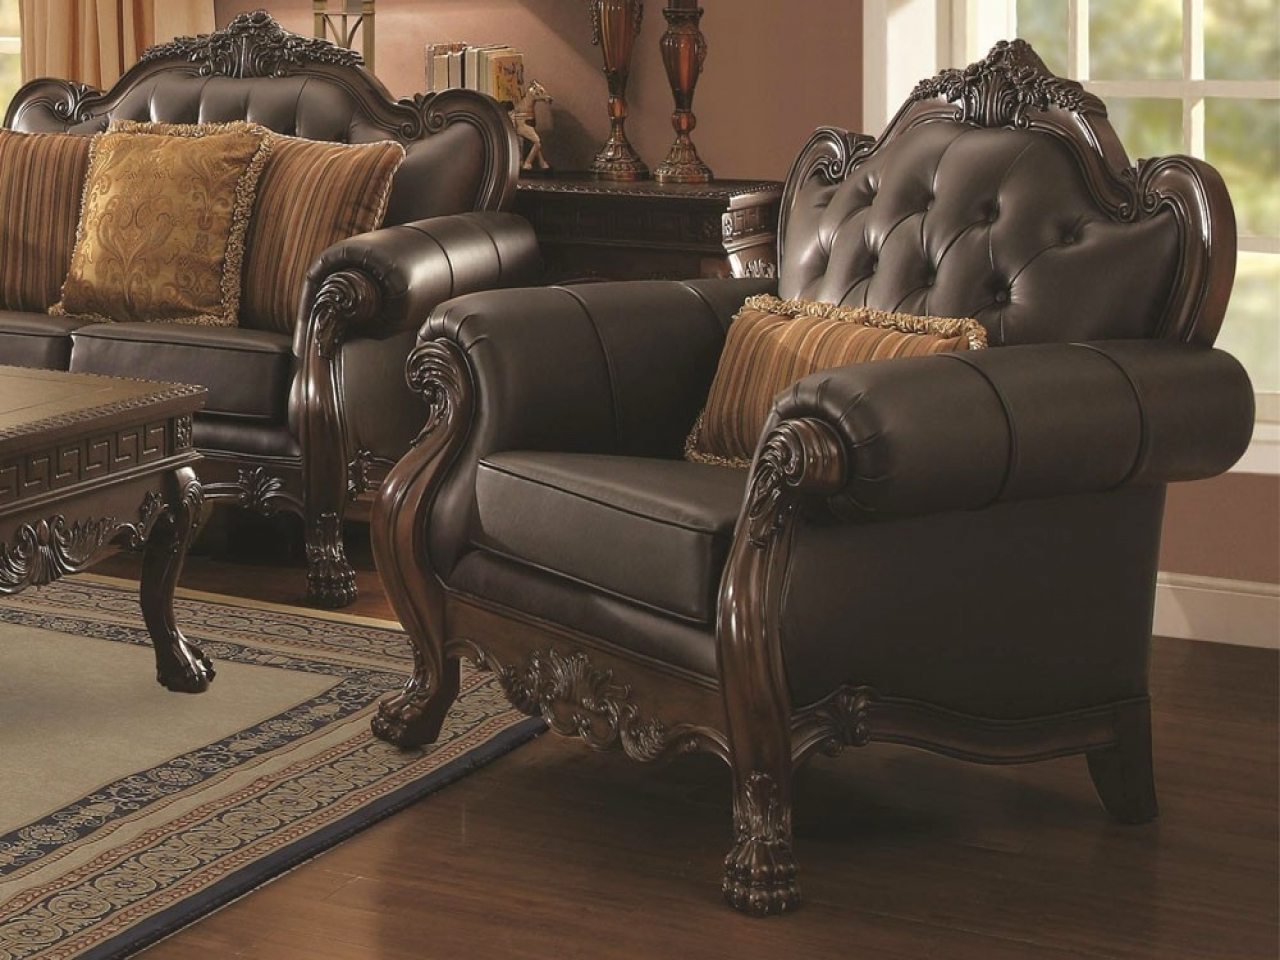 Well Known Victorian Leather Sofas Inside Living Room : Victorian Leather Sofa Leather Couches For Sale L (View 7 of 15)